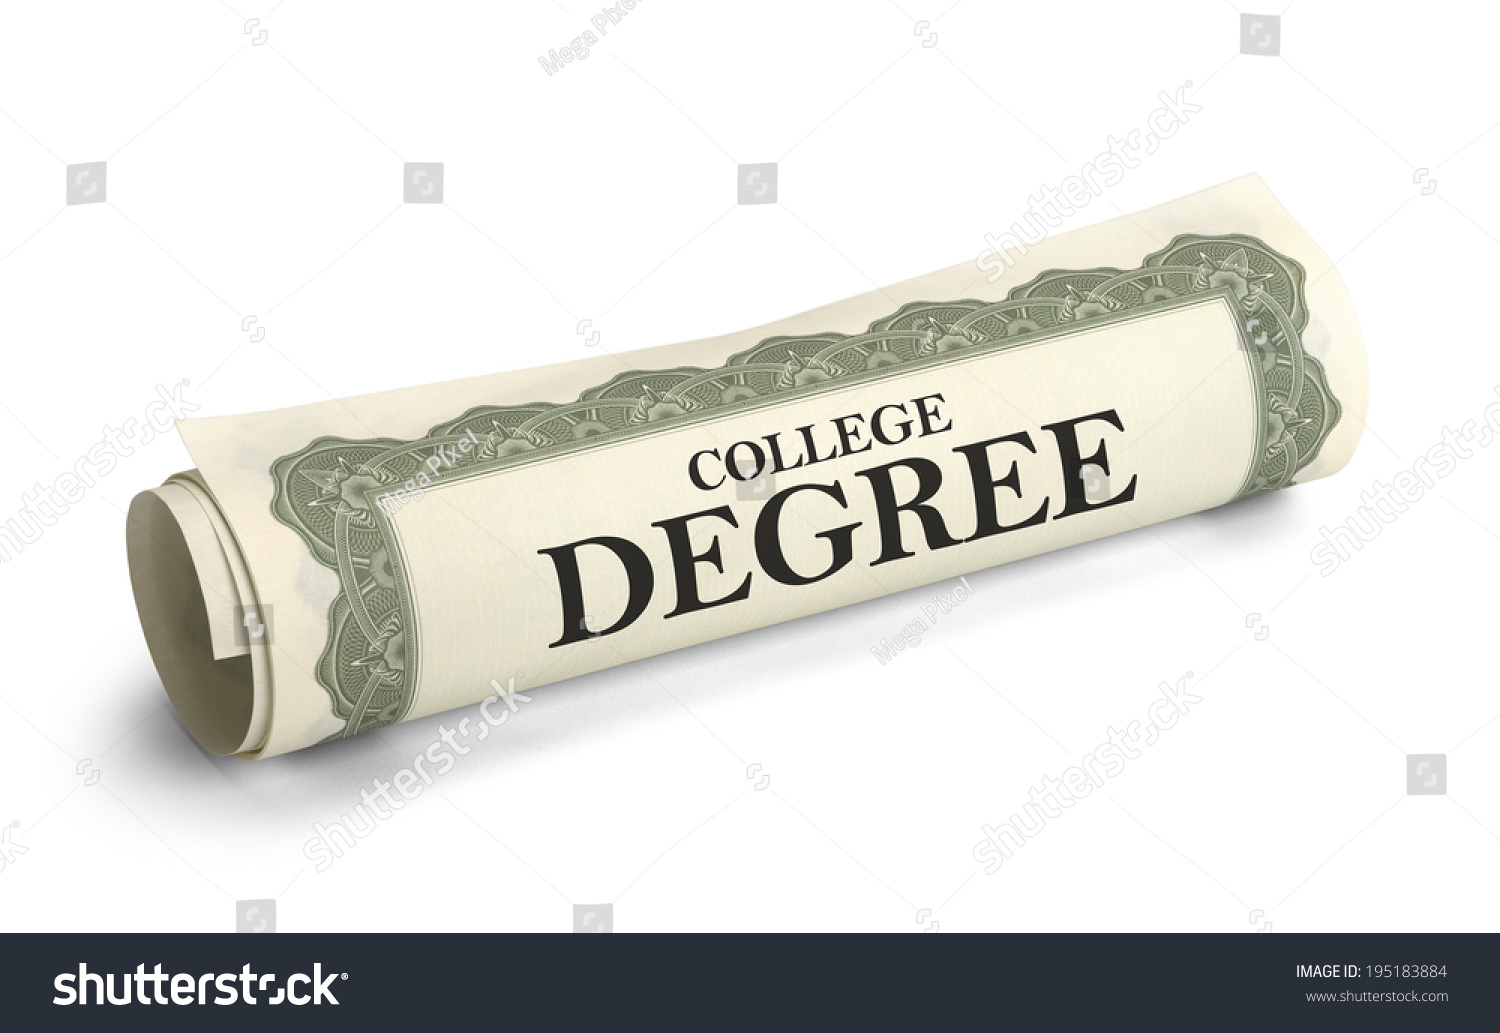 Image result for college diploma